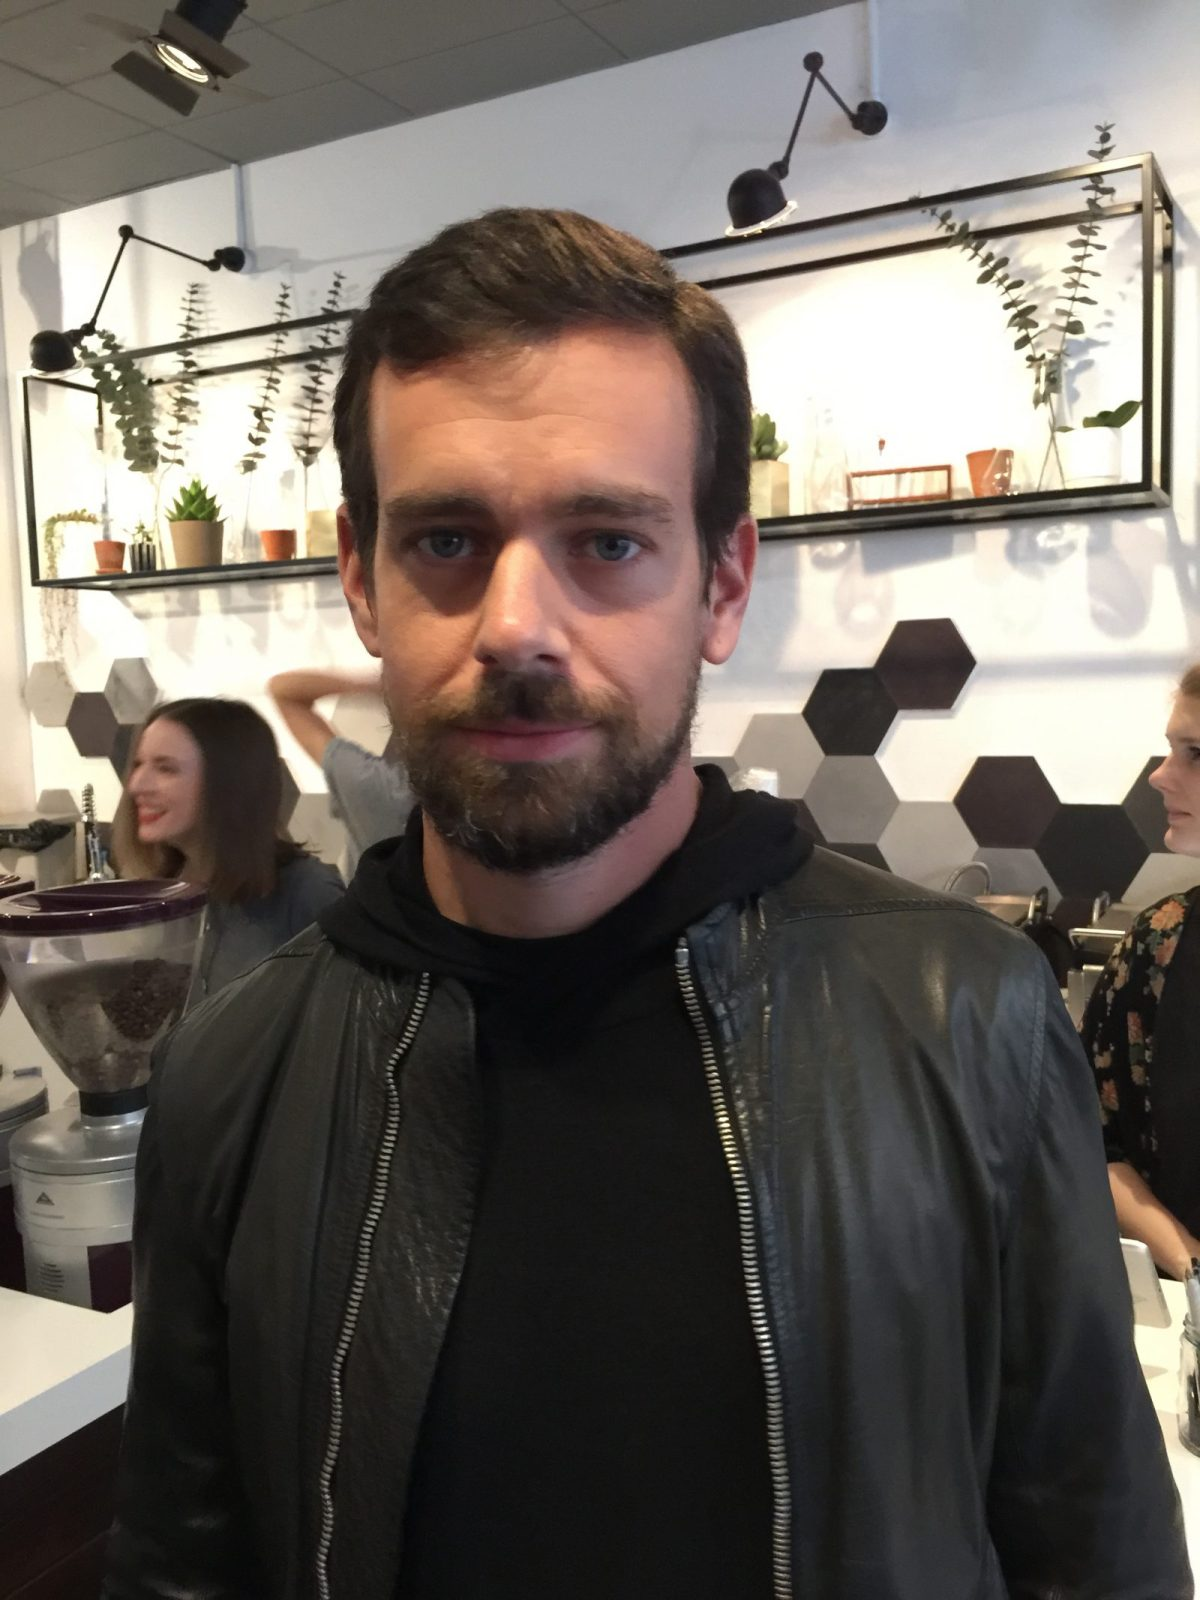 Jack Dorsey, Twitter CEO and Square founder, in November 2014. Photo: Cellanr / CreativeCommons